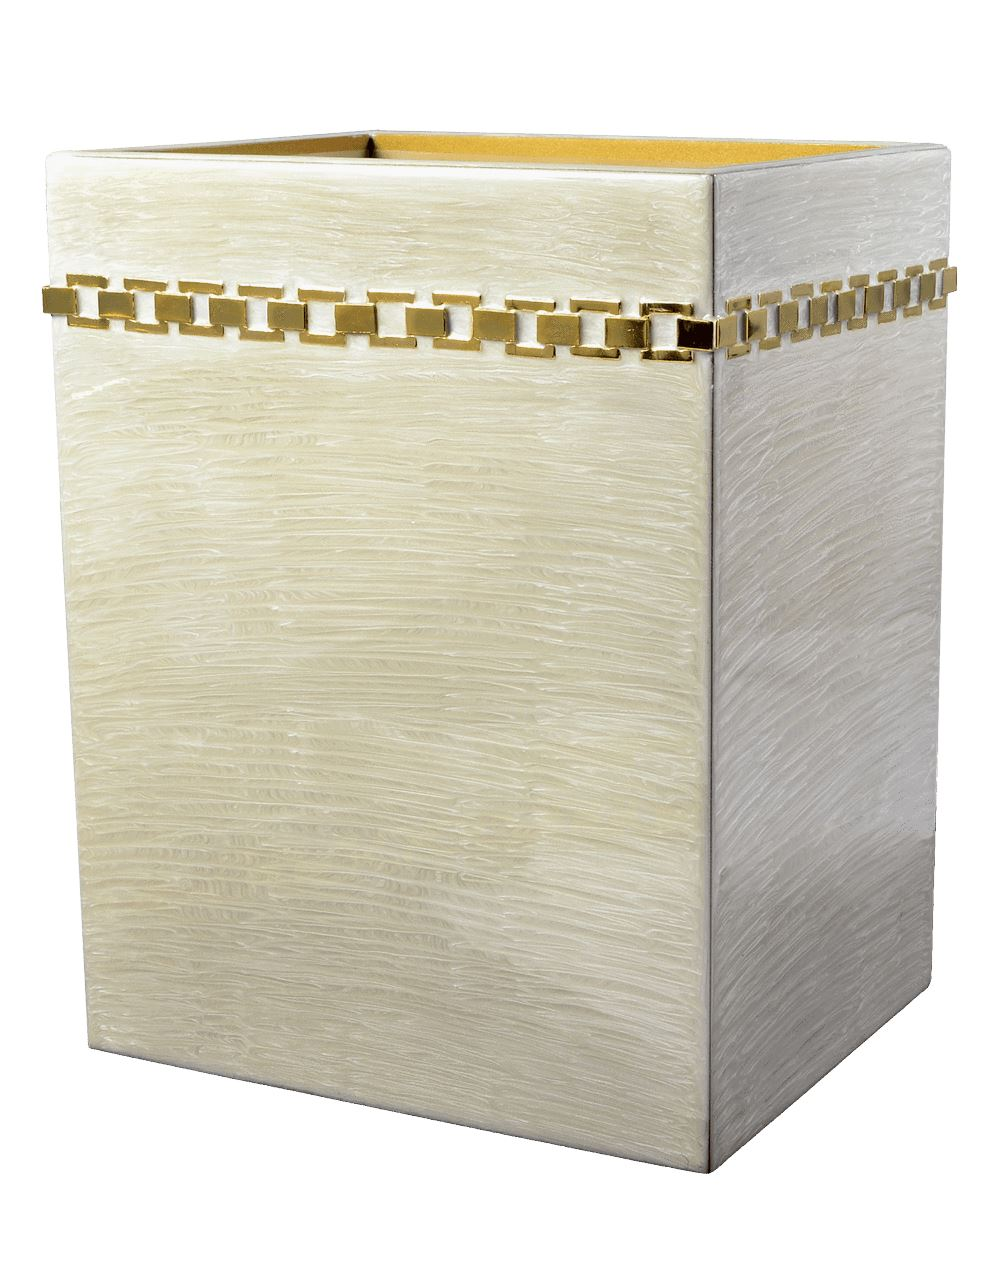 Wastebasket - Carlyle Moonglow Collection by Mike + Ally | Fig Linens and Home